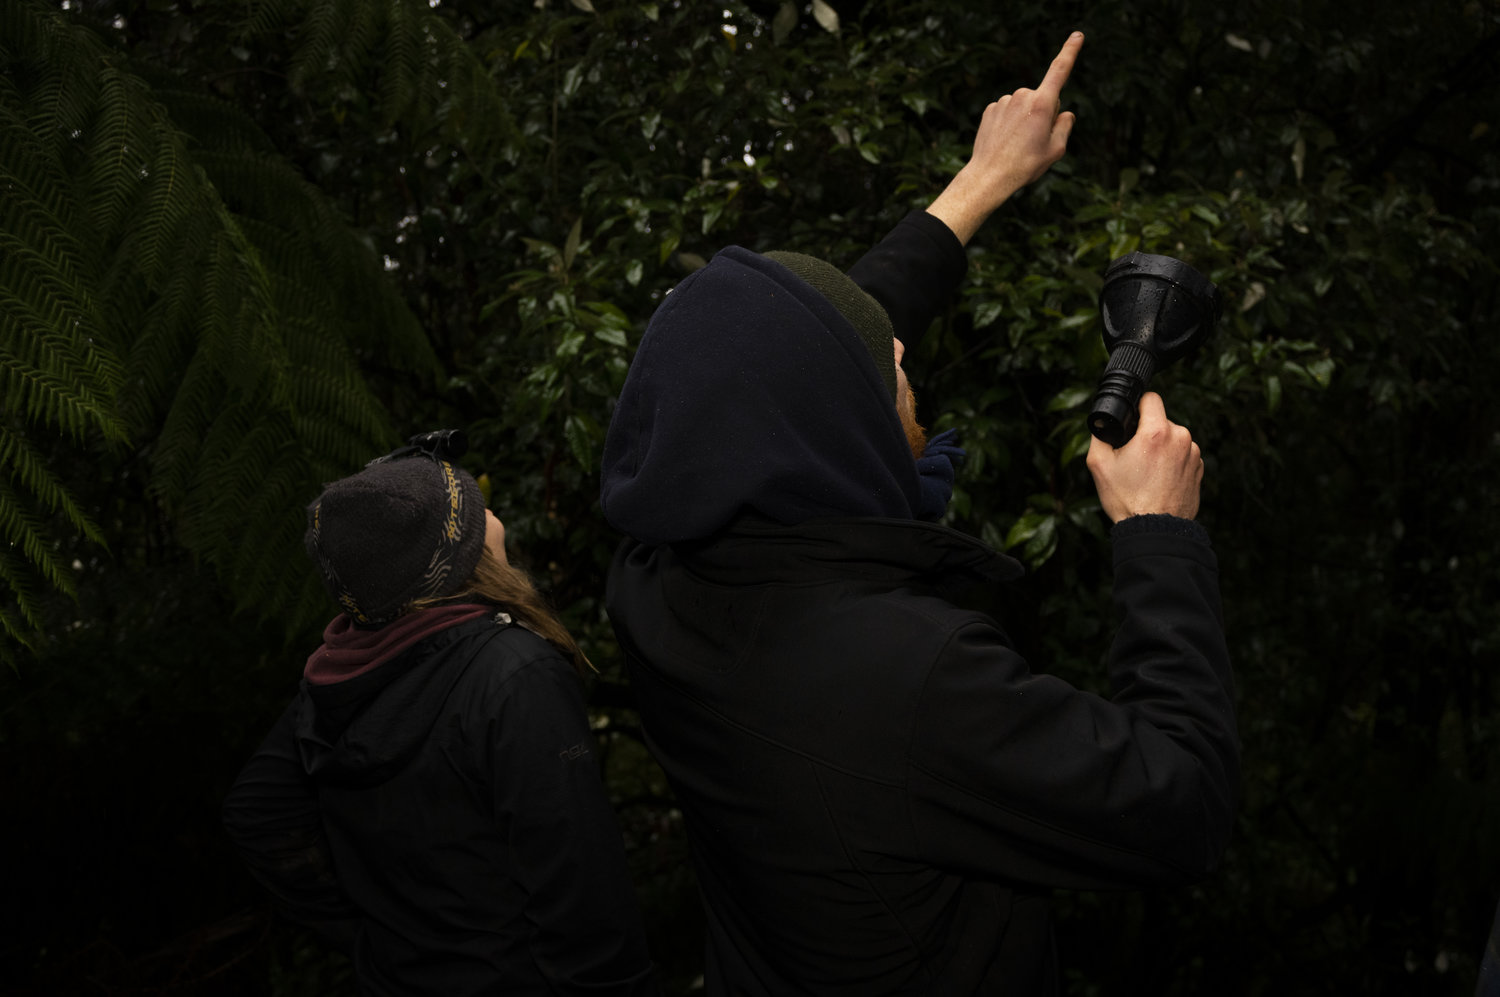 Above: WOTCH surveyors conduct a spotlight survey in the forest.